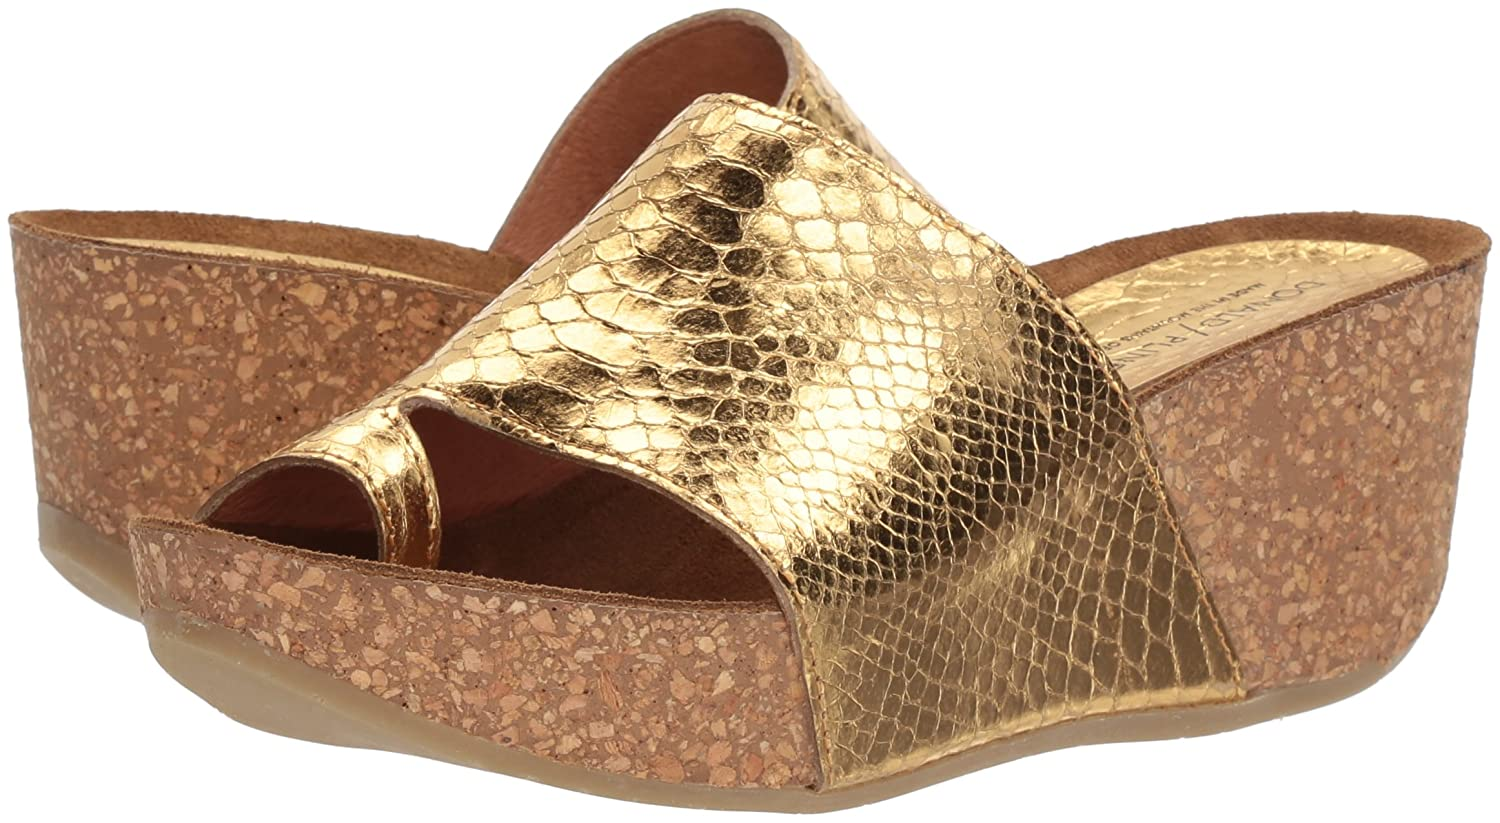 Donald J Pliner Women's 8.5 Ginie Slide Sandal B07555FSXJ 8.5 Women's B(M) US|Gold b33fb5